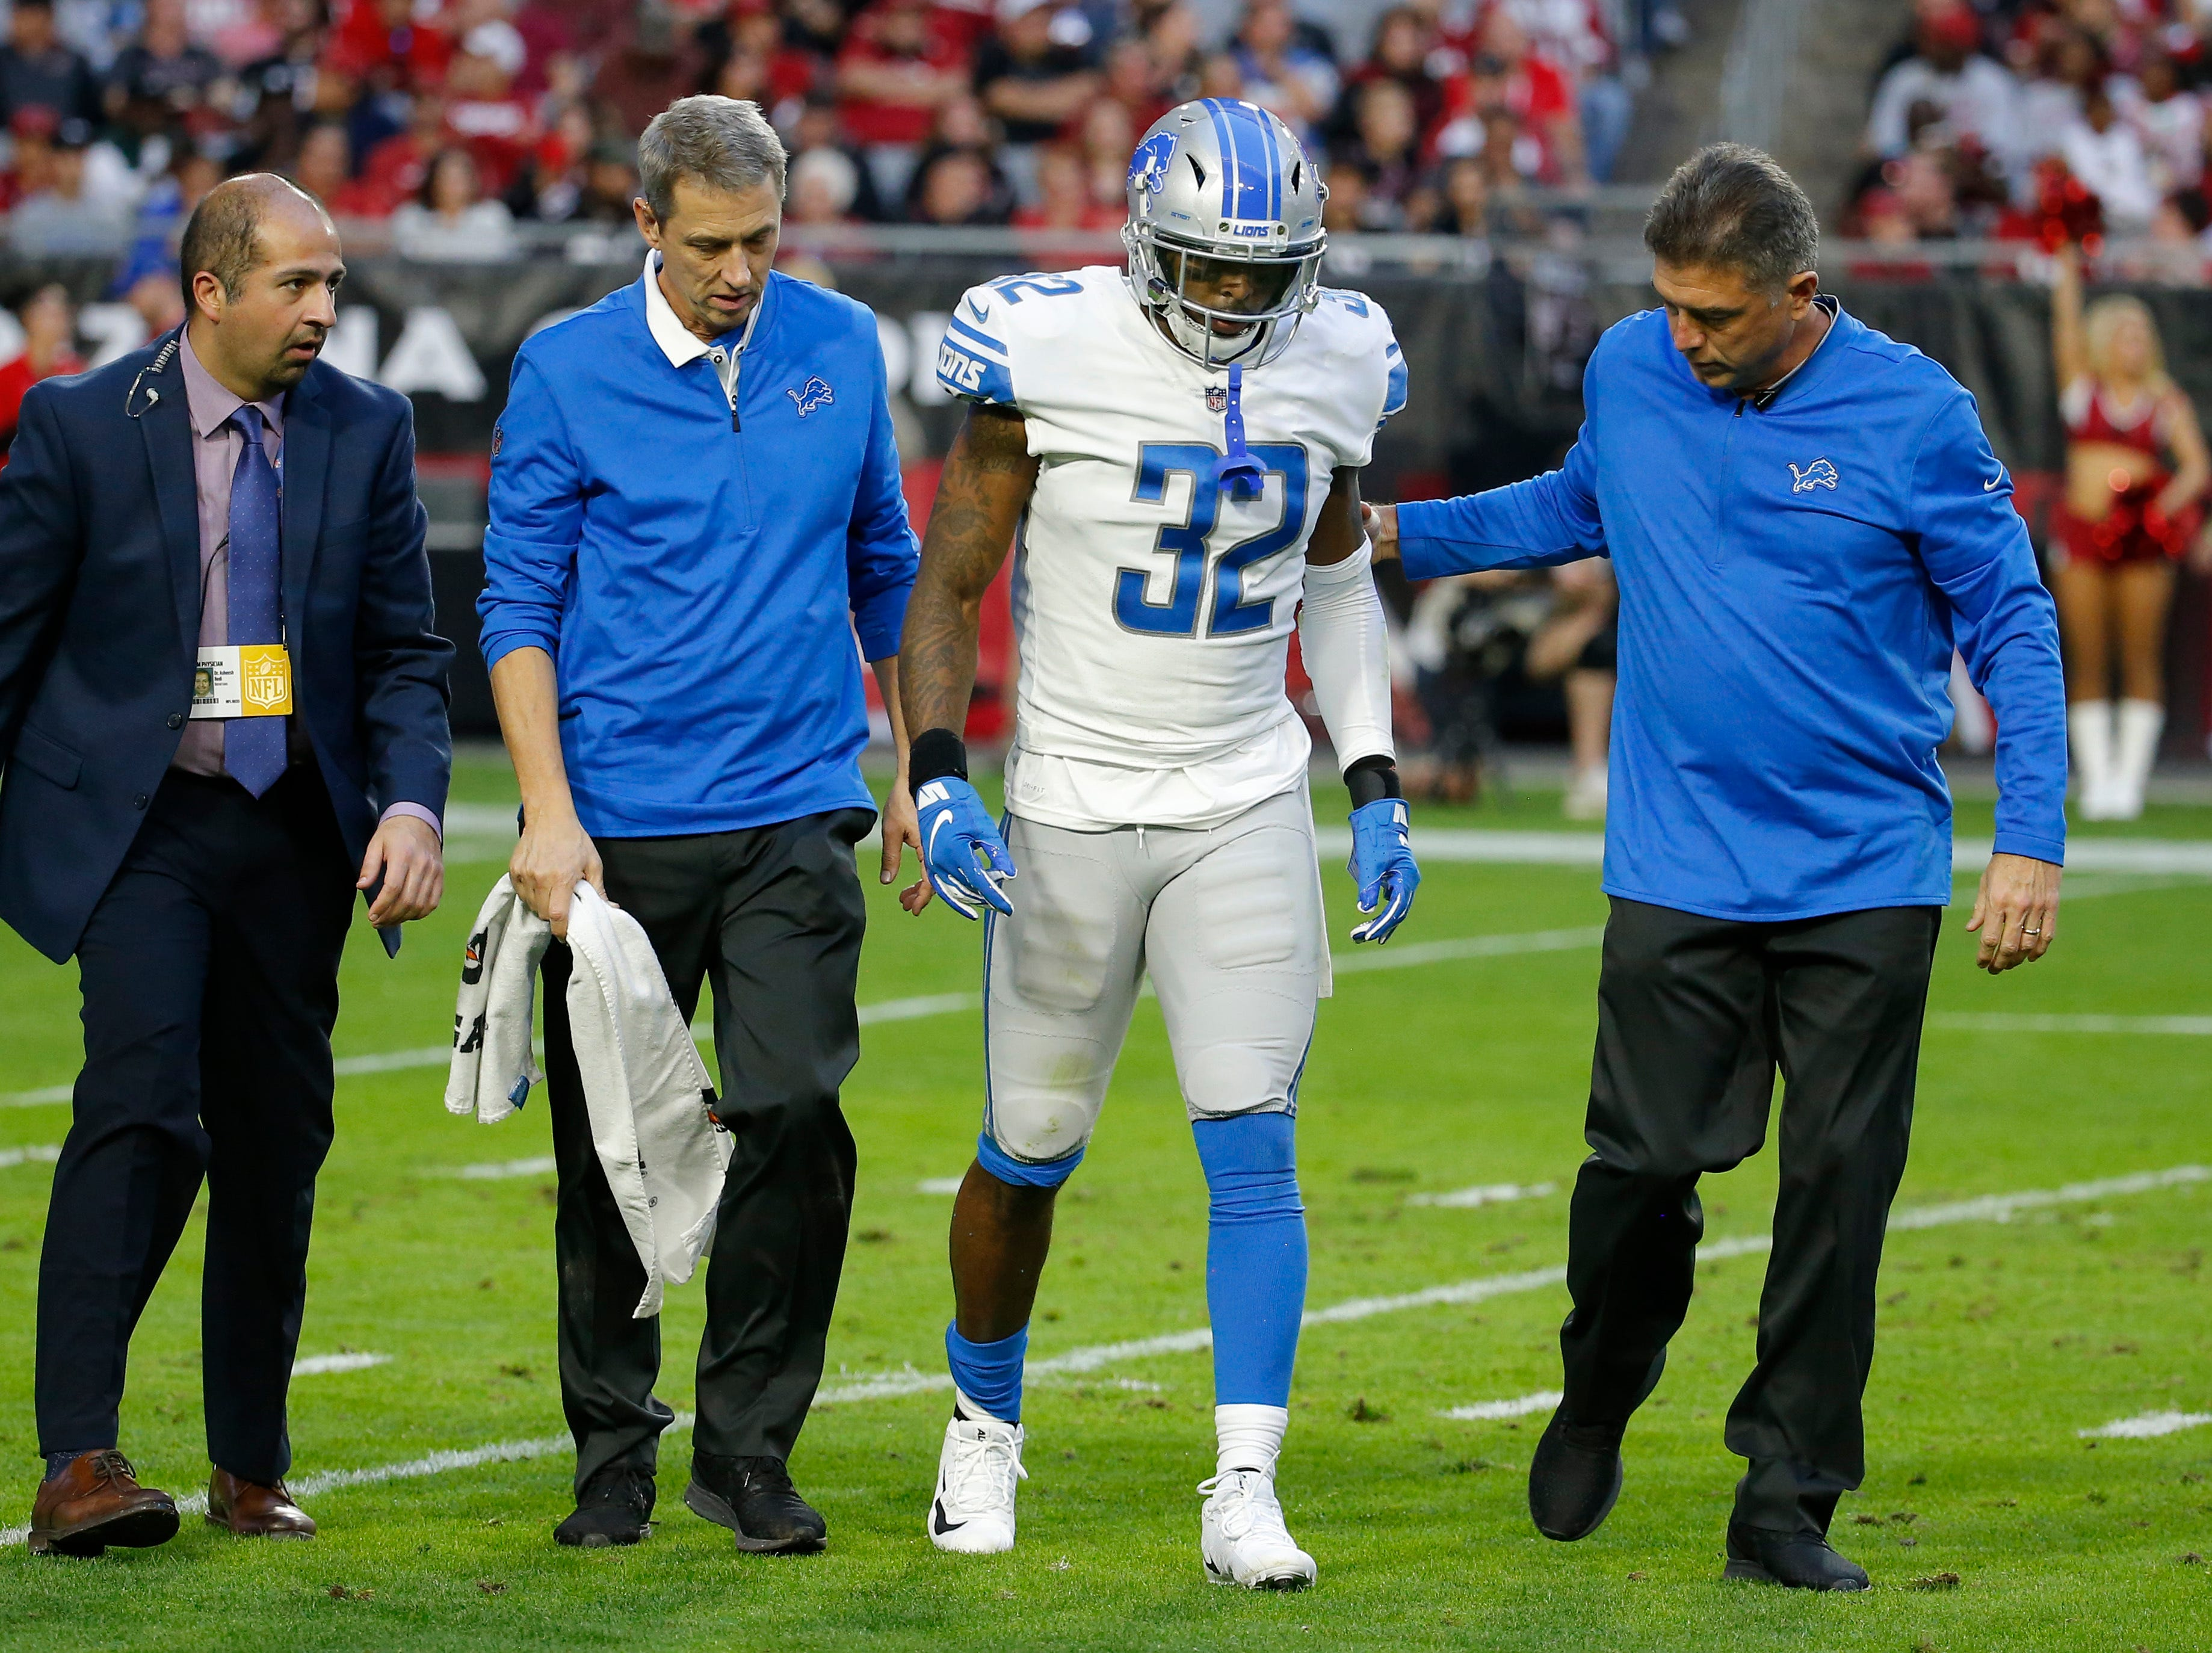 Detroit Lions defensive back Tavon Wilson (32) is helped after an injury against the Arizona Cardinals during the second half.